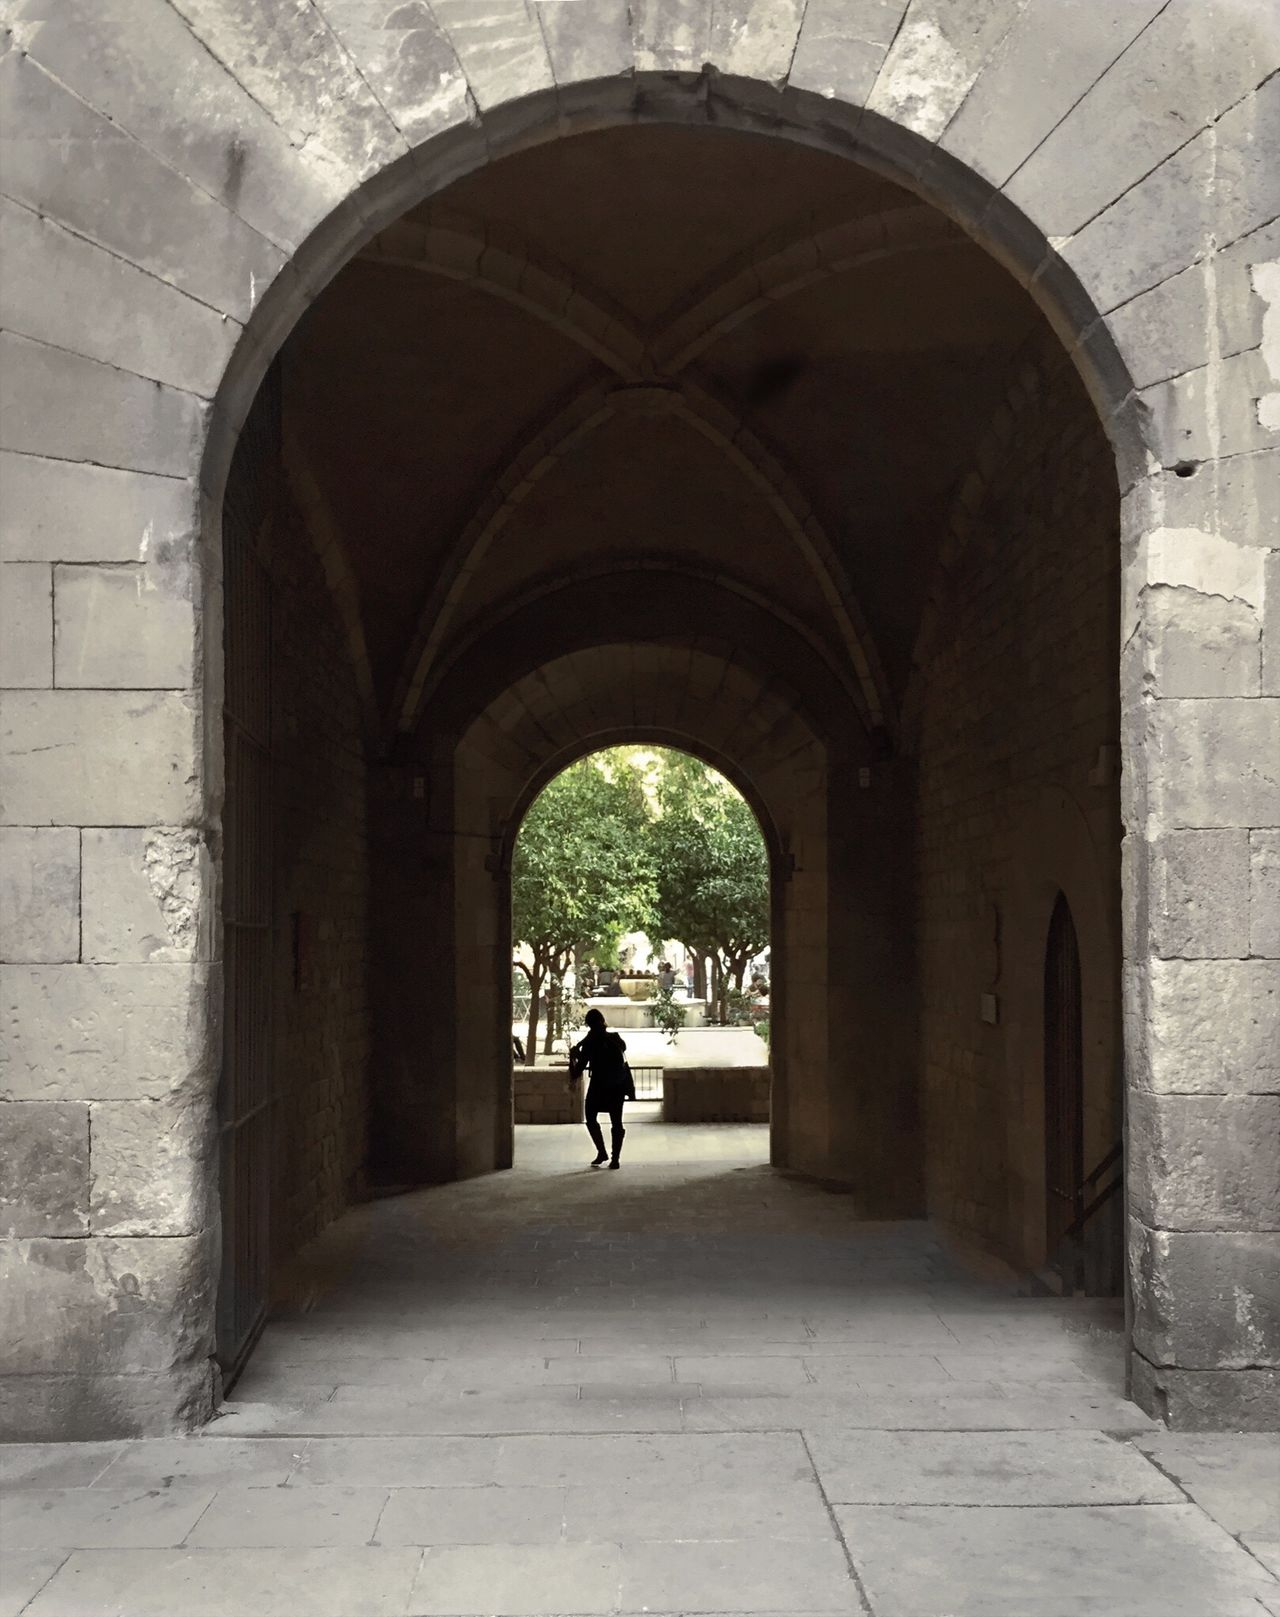 72 / 365 Arch Architecture Archway The Way Forward Arched Built Structure Real People Tunnel Day City One Person Outdoors